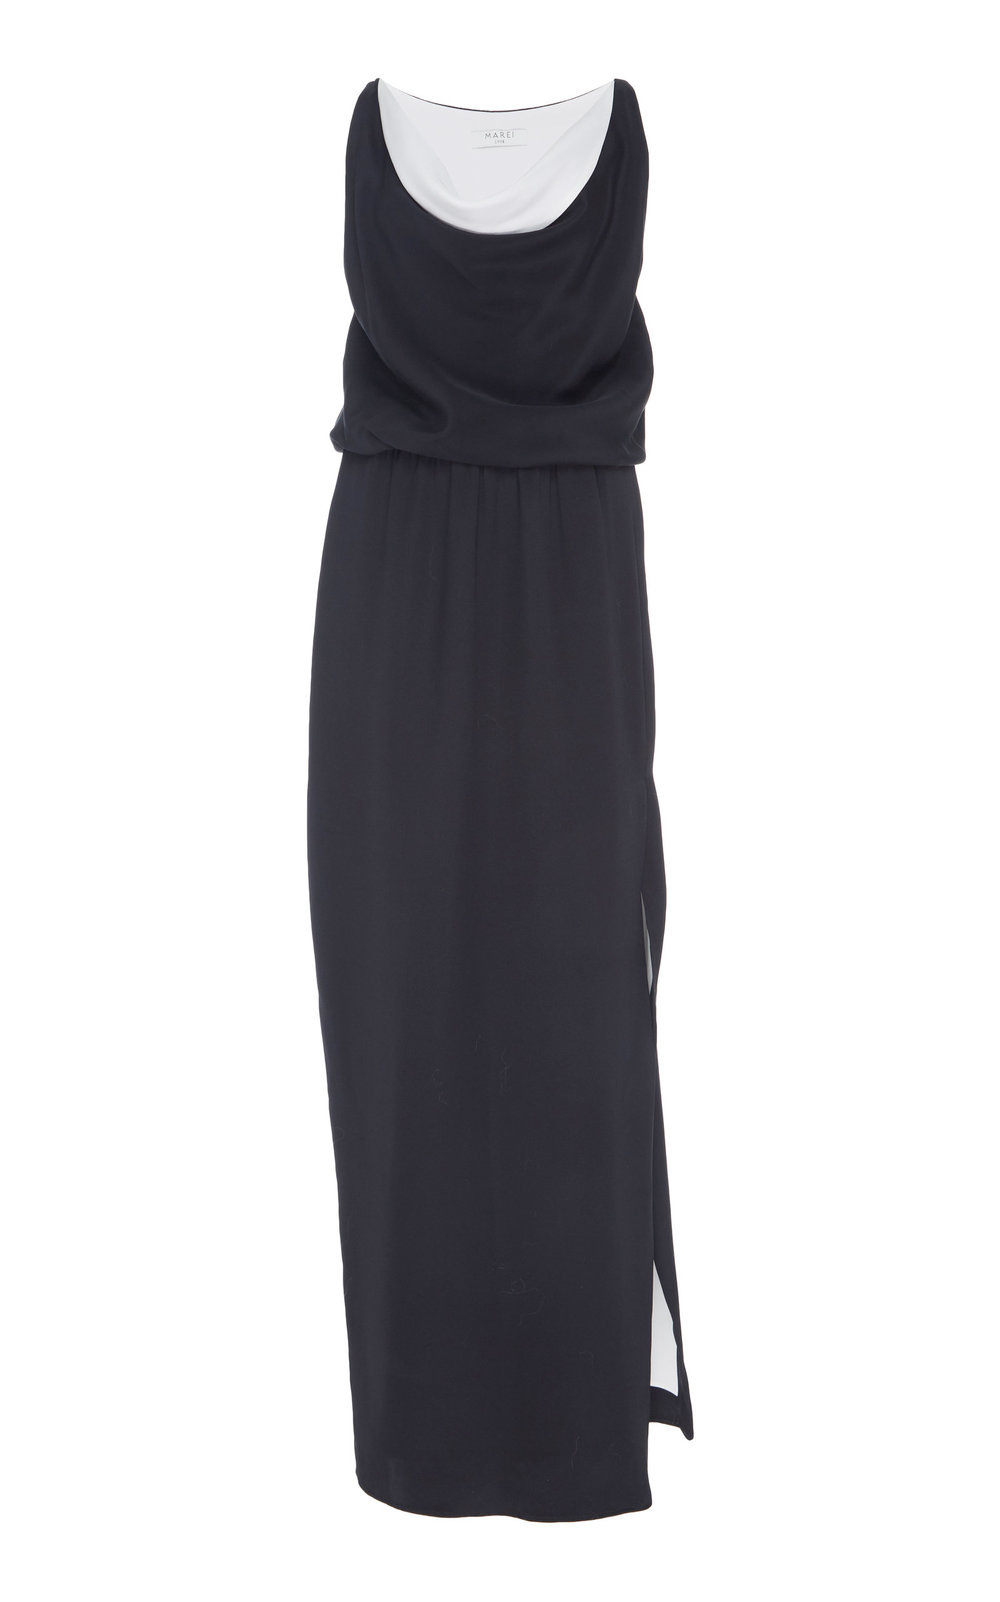 Zenobia Silk Dress - BLACK  A chic day to night slip on Silk dress. The minimalistic design is refined by an open draped neckline and contrasting lining. Cinched waistline and high side slit accentuate proportions while creating a slight flare.